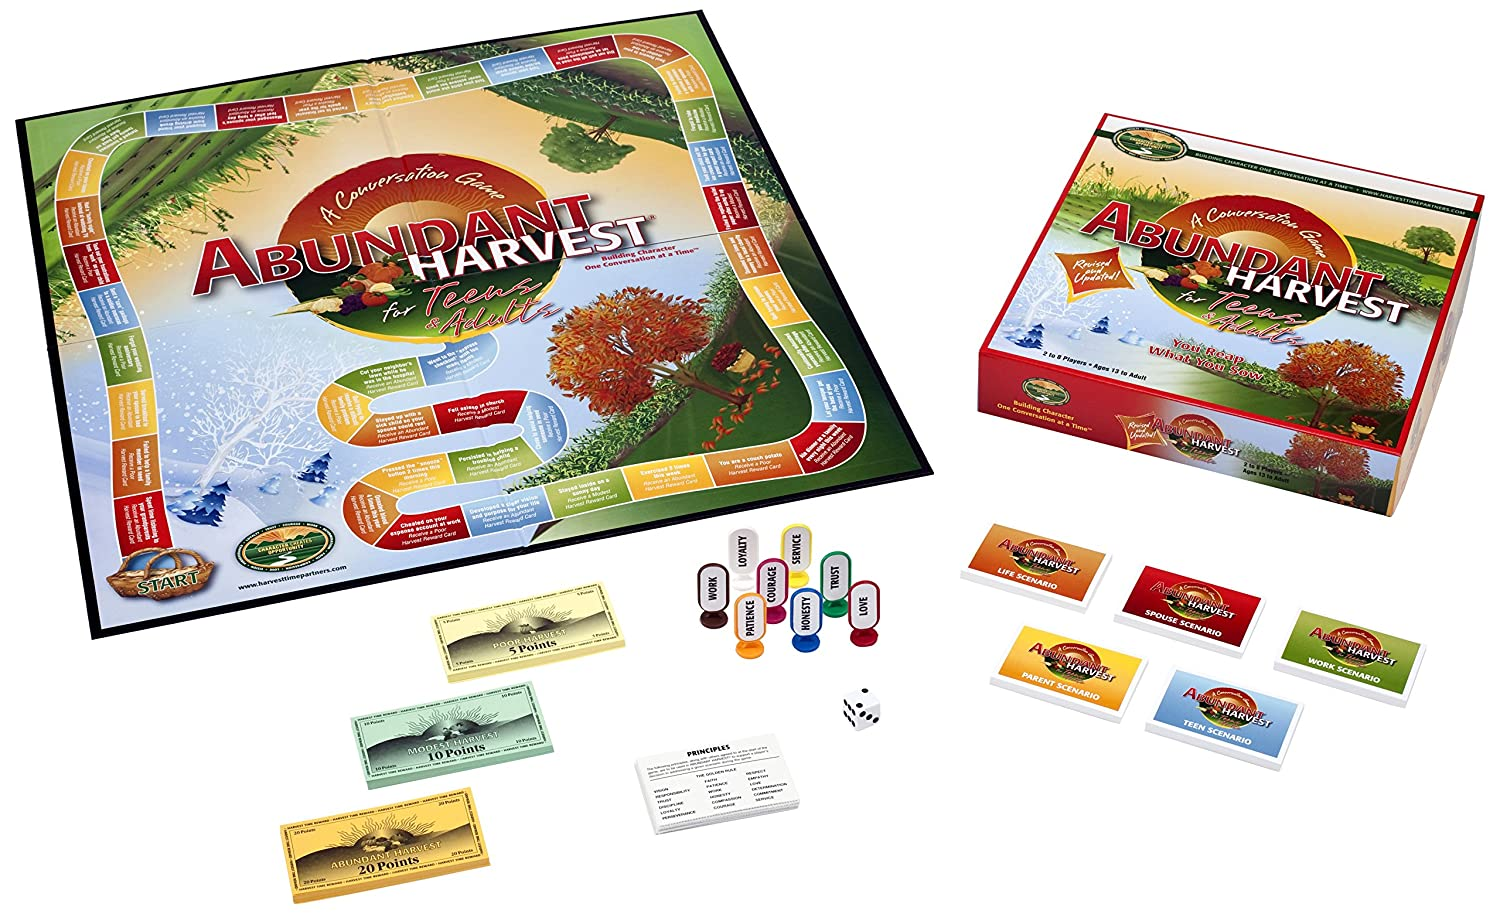 Amazon.com: Abundant Harvest Board Game for Teens and Adults: Toys & Games